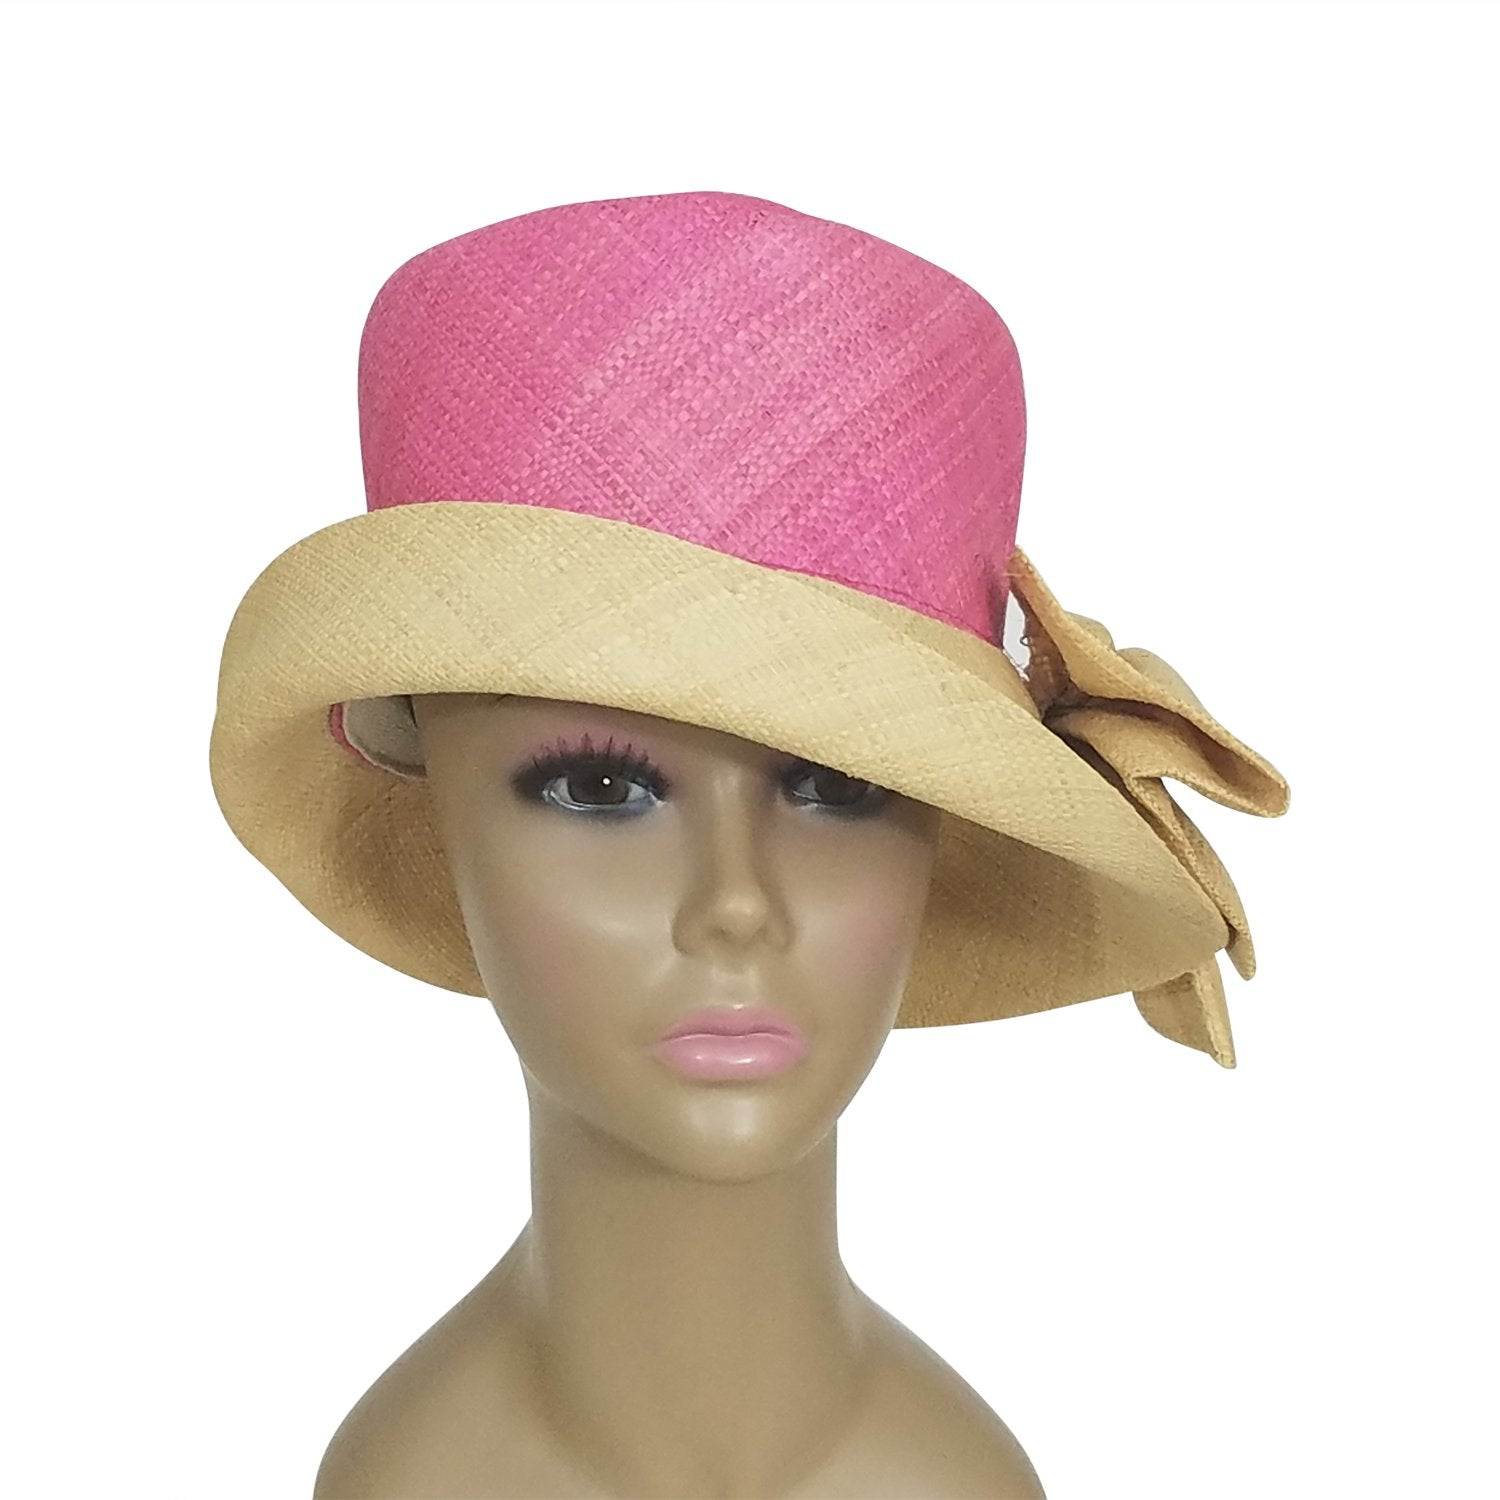 Azacca: Authentic African Hand Woven Pink and Natural Madagascar Bell Shaped Raffia Hat with Bow